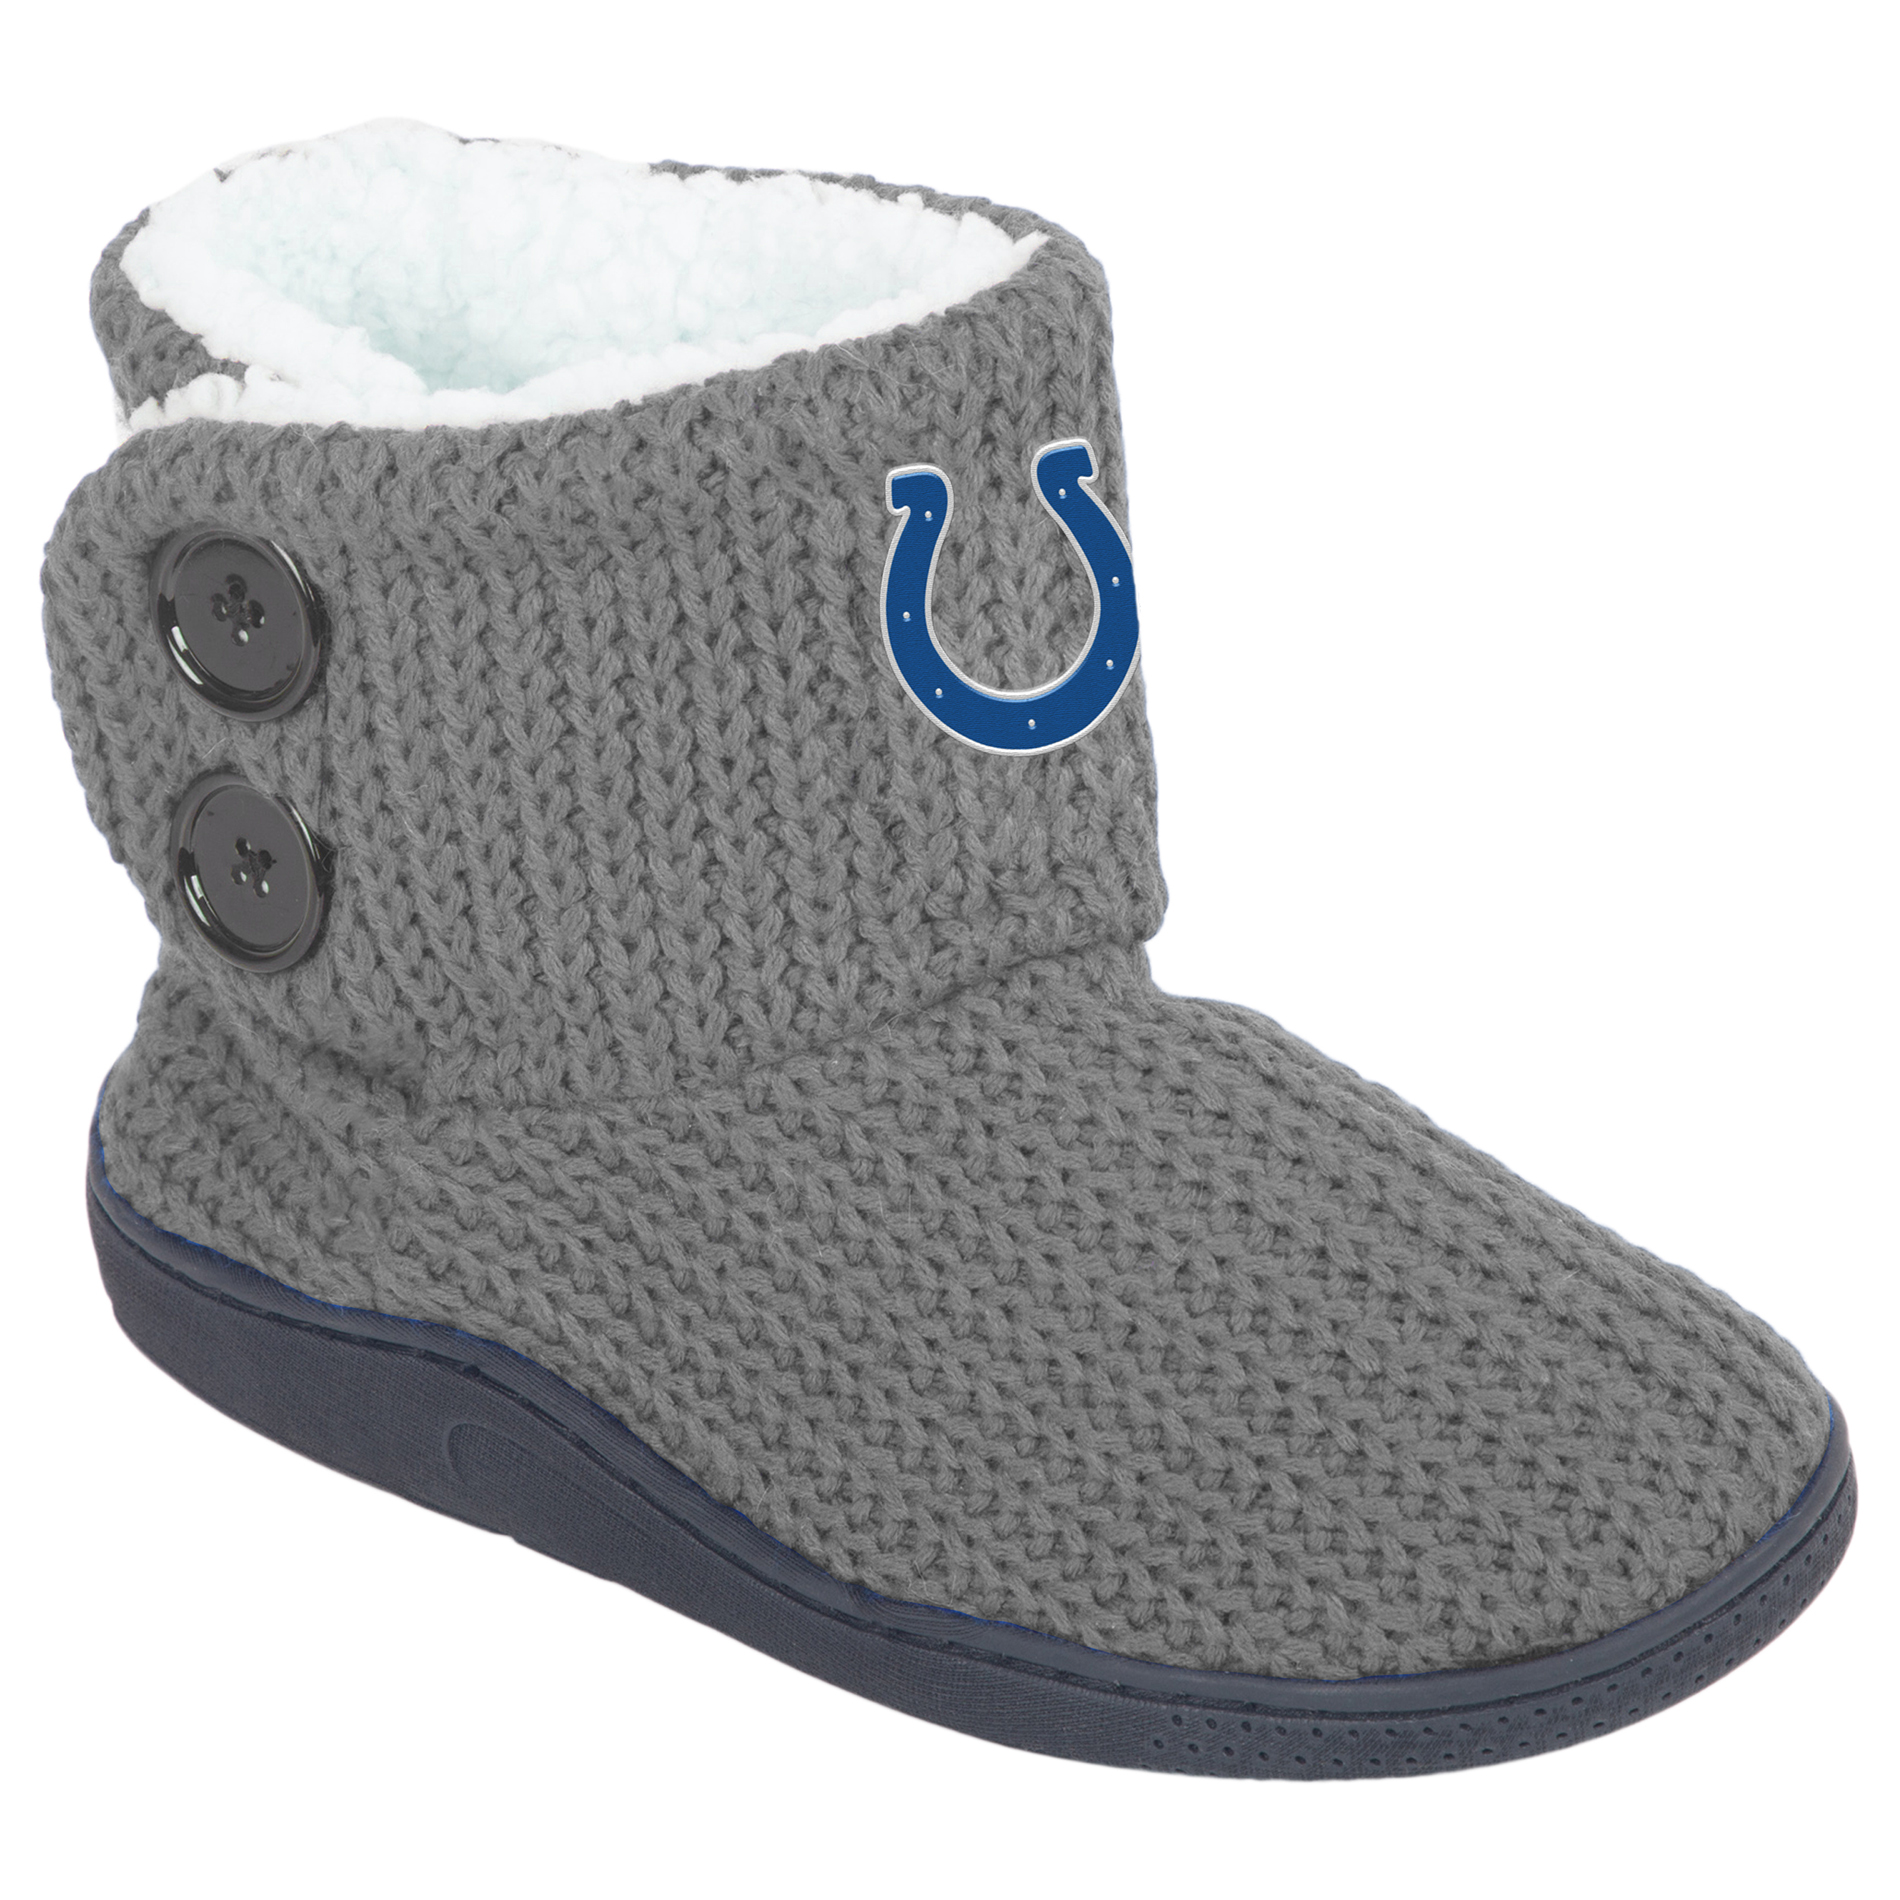 NFL Women's 2-Button Knit Slipper Boots - Indianapolis Colts, Size: Large